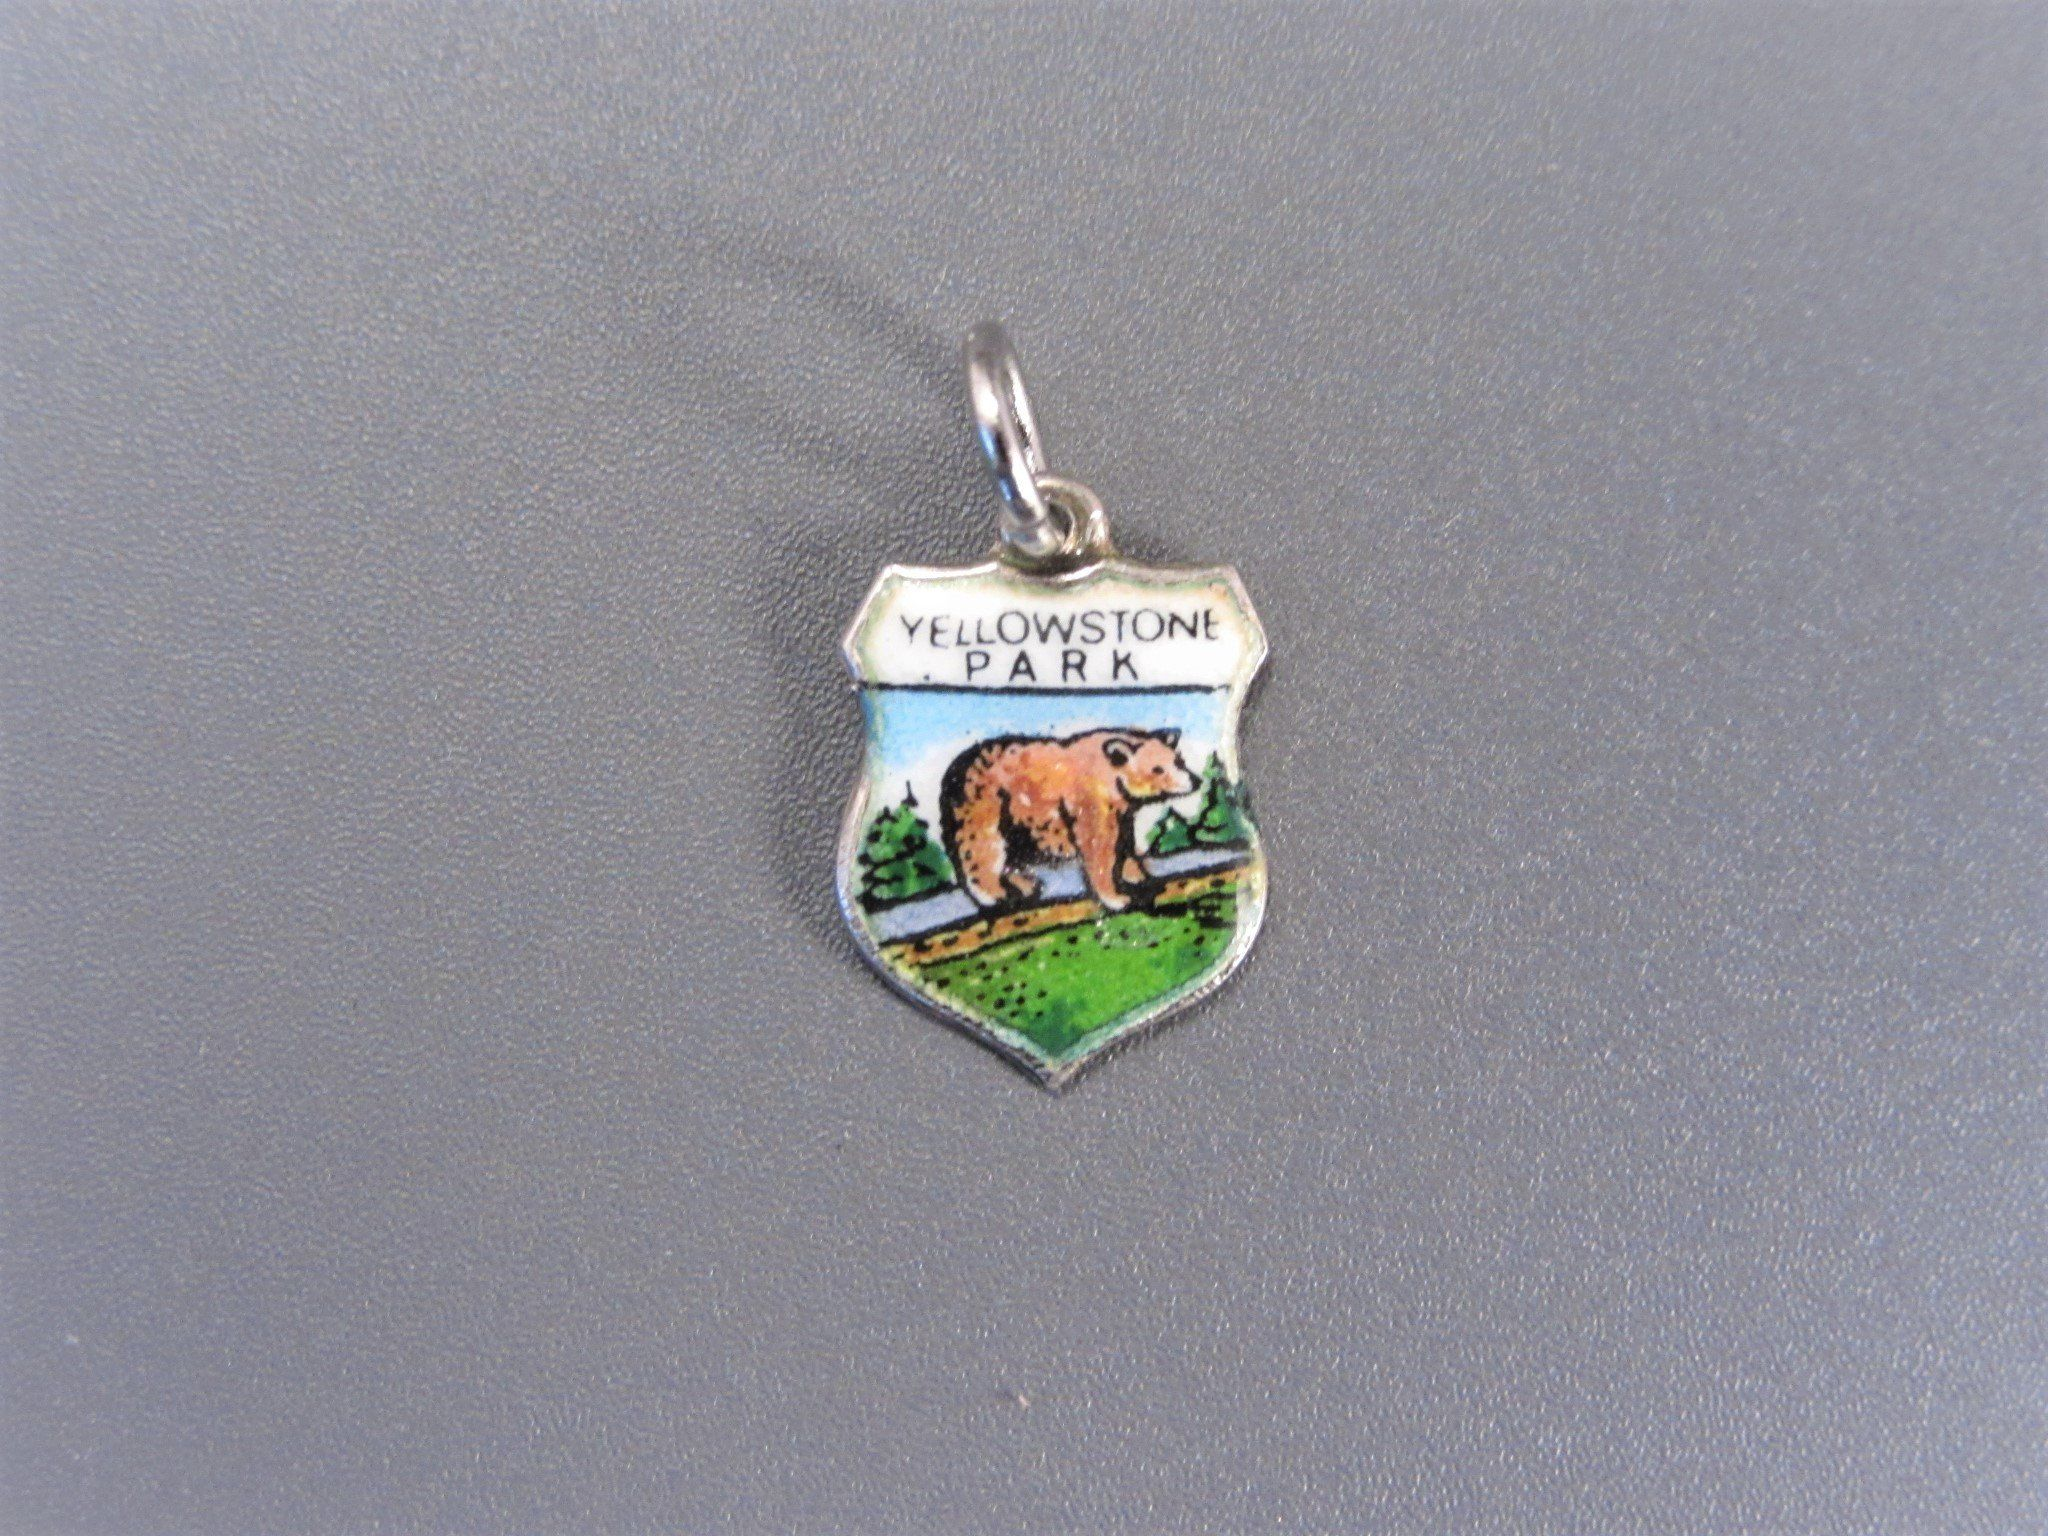 Sterling Silver Charm Bracelet With Attached Yellowstone National Park Map Charm